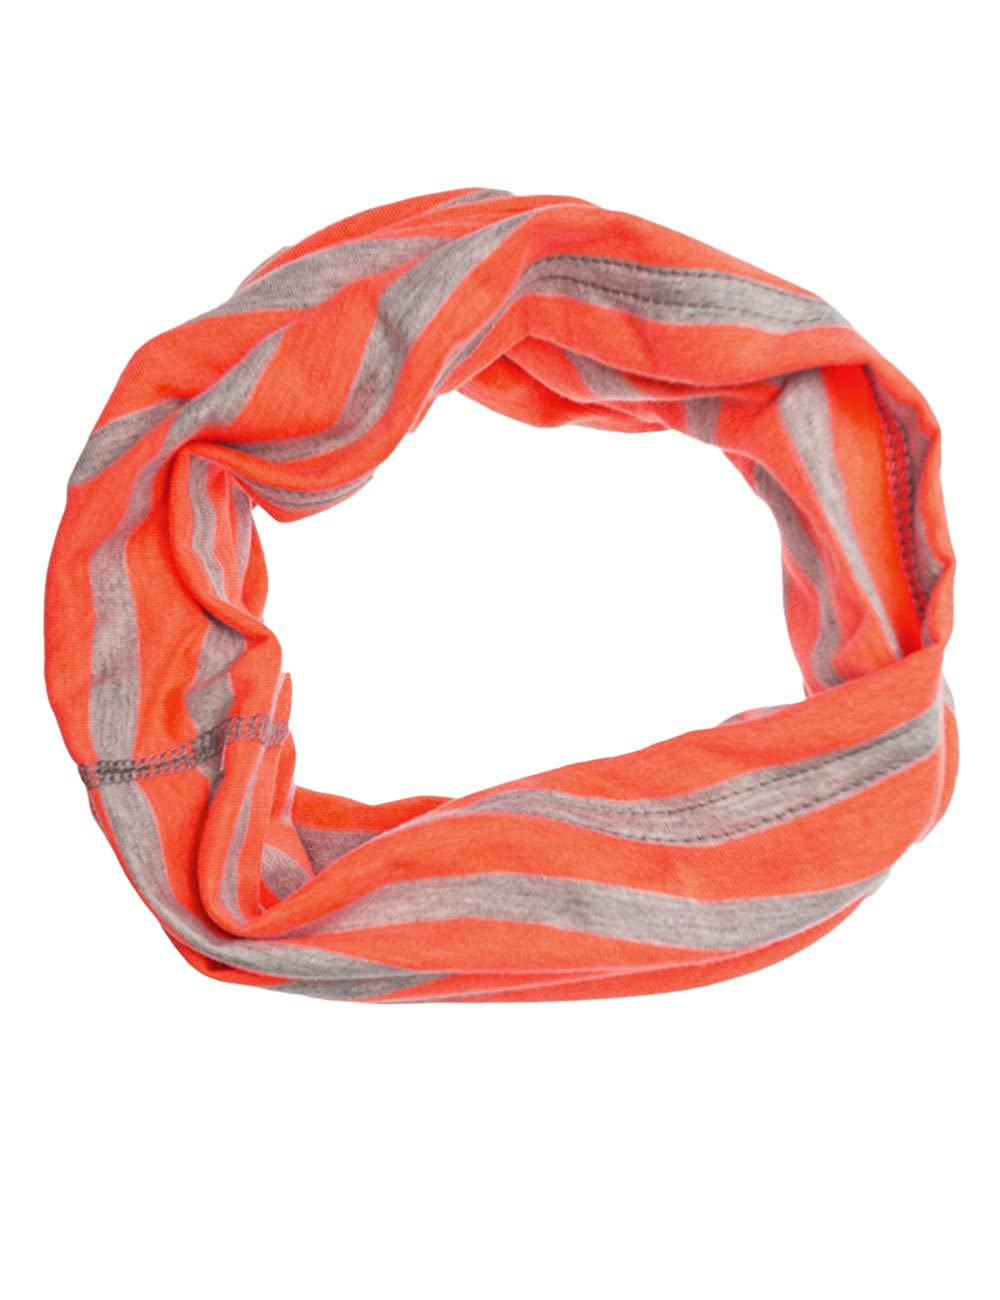 maximo Girls' Neckerchief Multicoloured Mehrfarbig (hellgrenadine/graumeliert 3905) 2 53607-007000